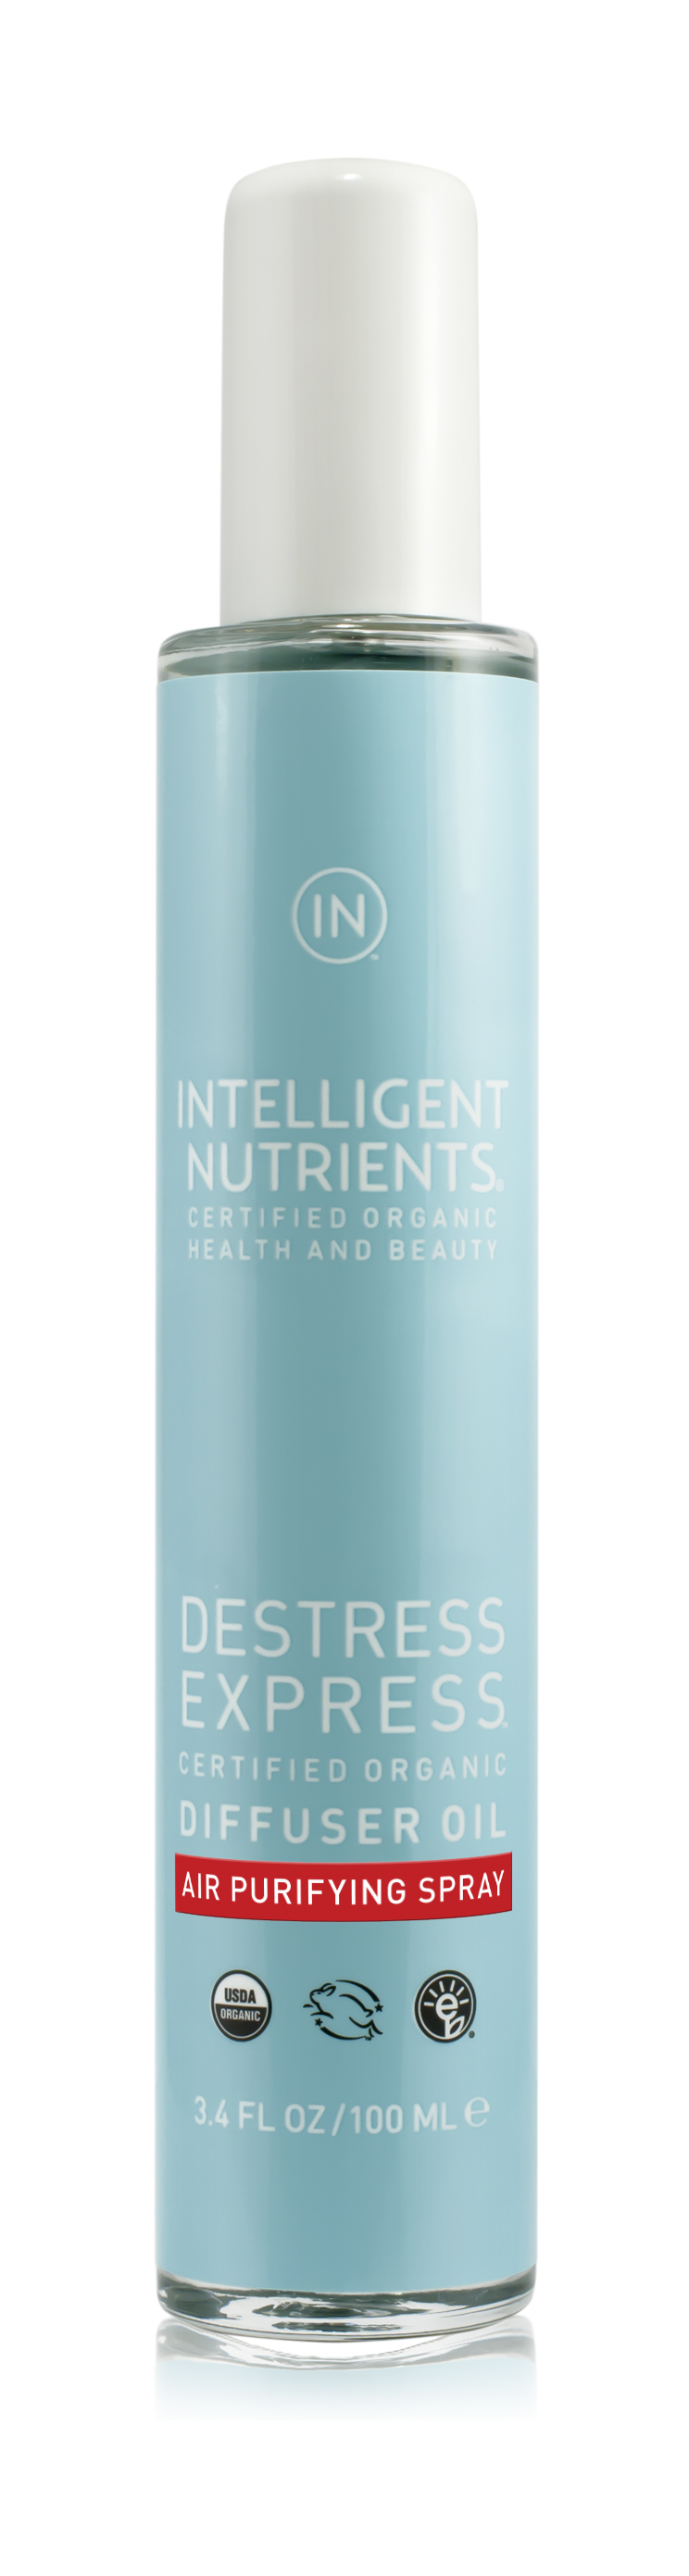 Destress Express™ Diffuser Oil (DKK515/100ml)